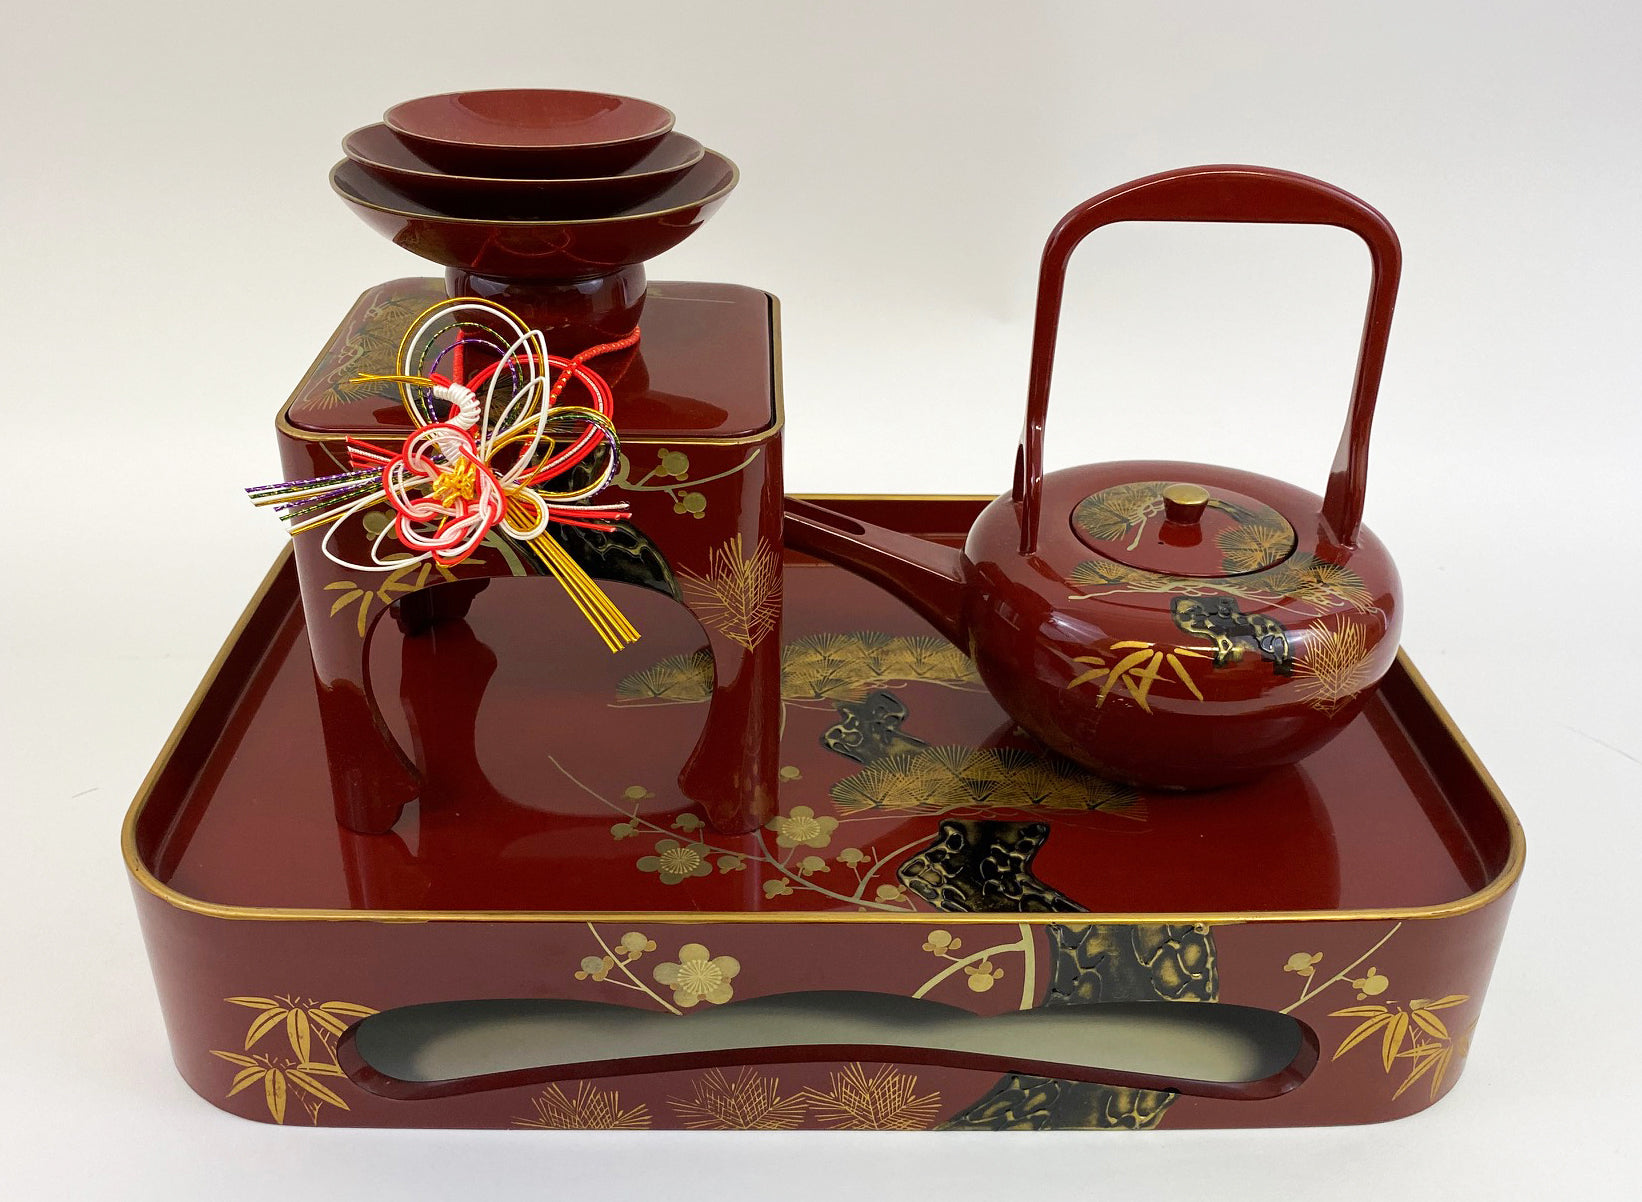 Sake Wedding Set with a Tray - Sansankudo Ceremony (Display Model) #2